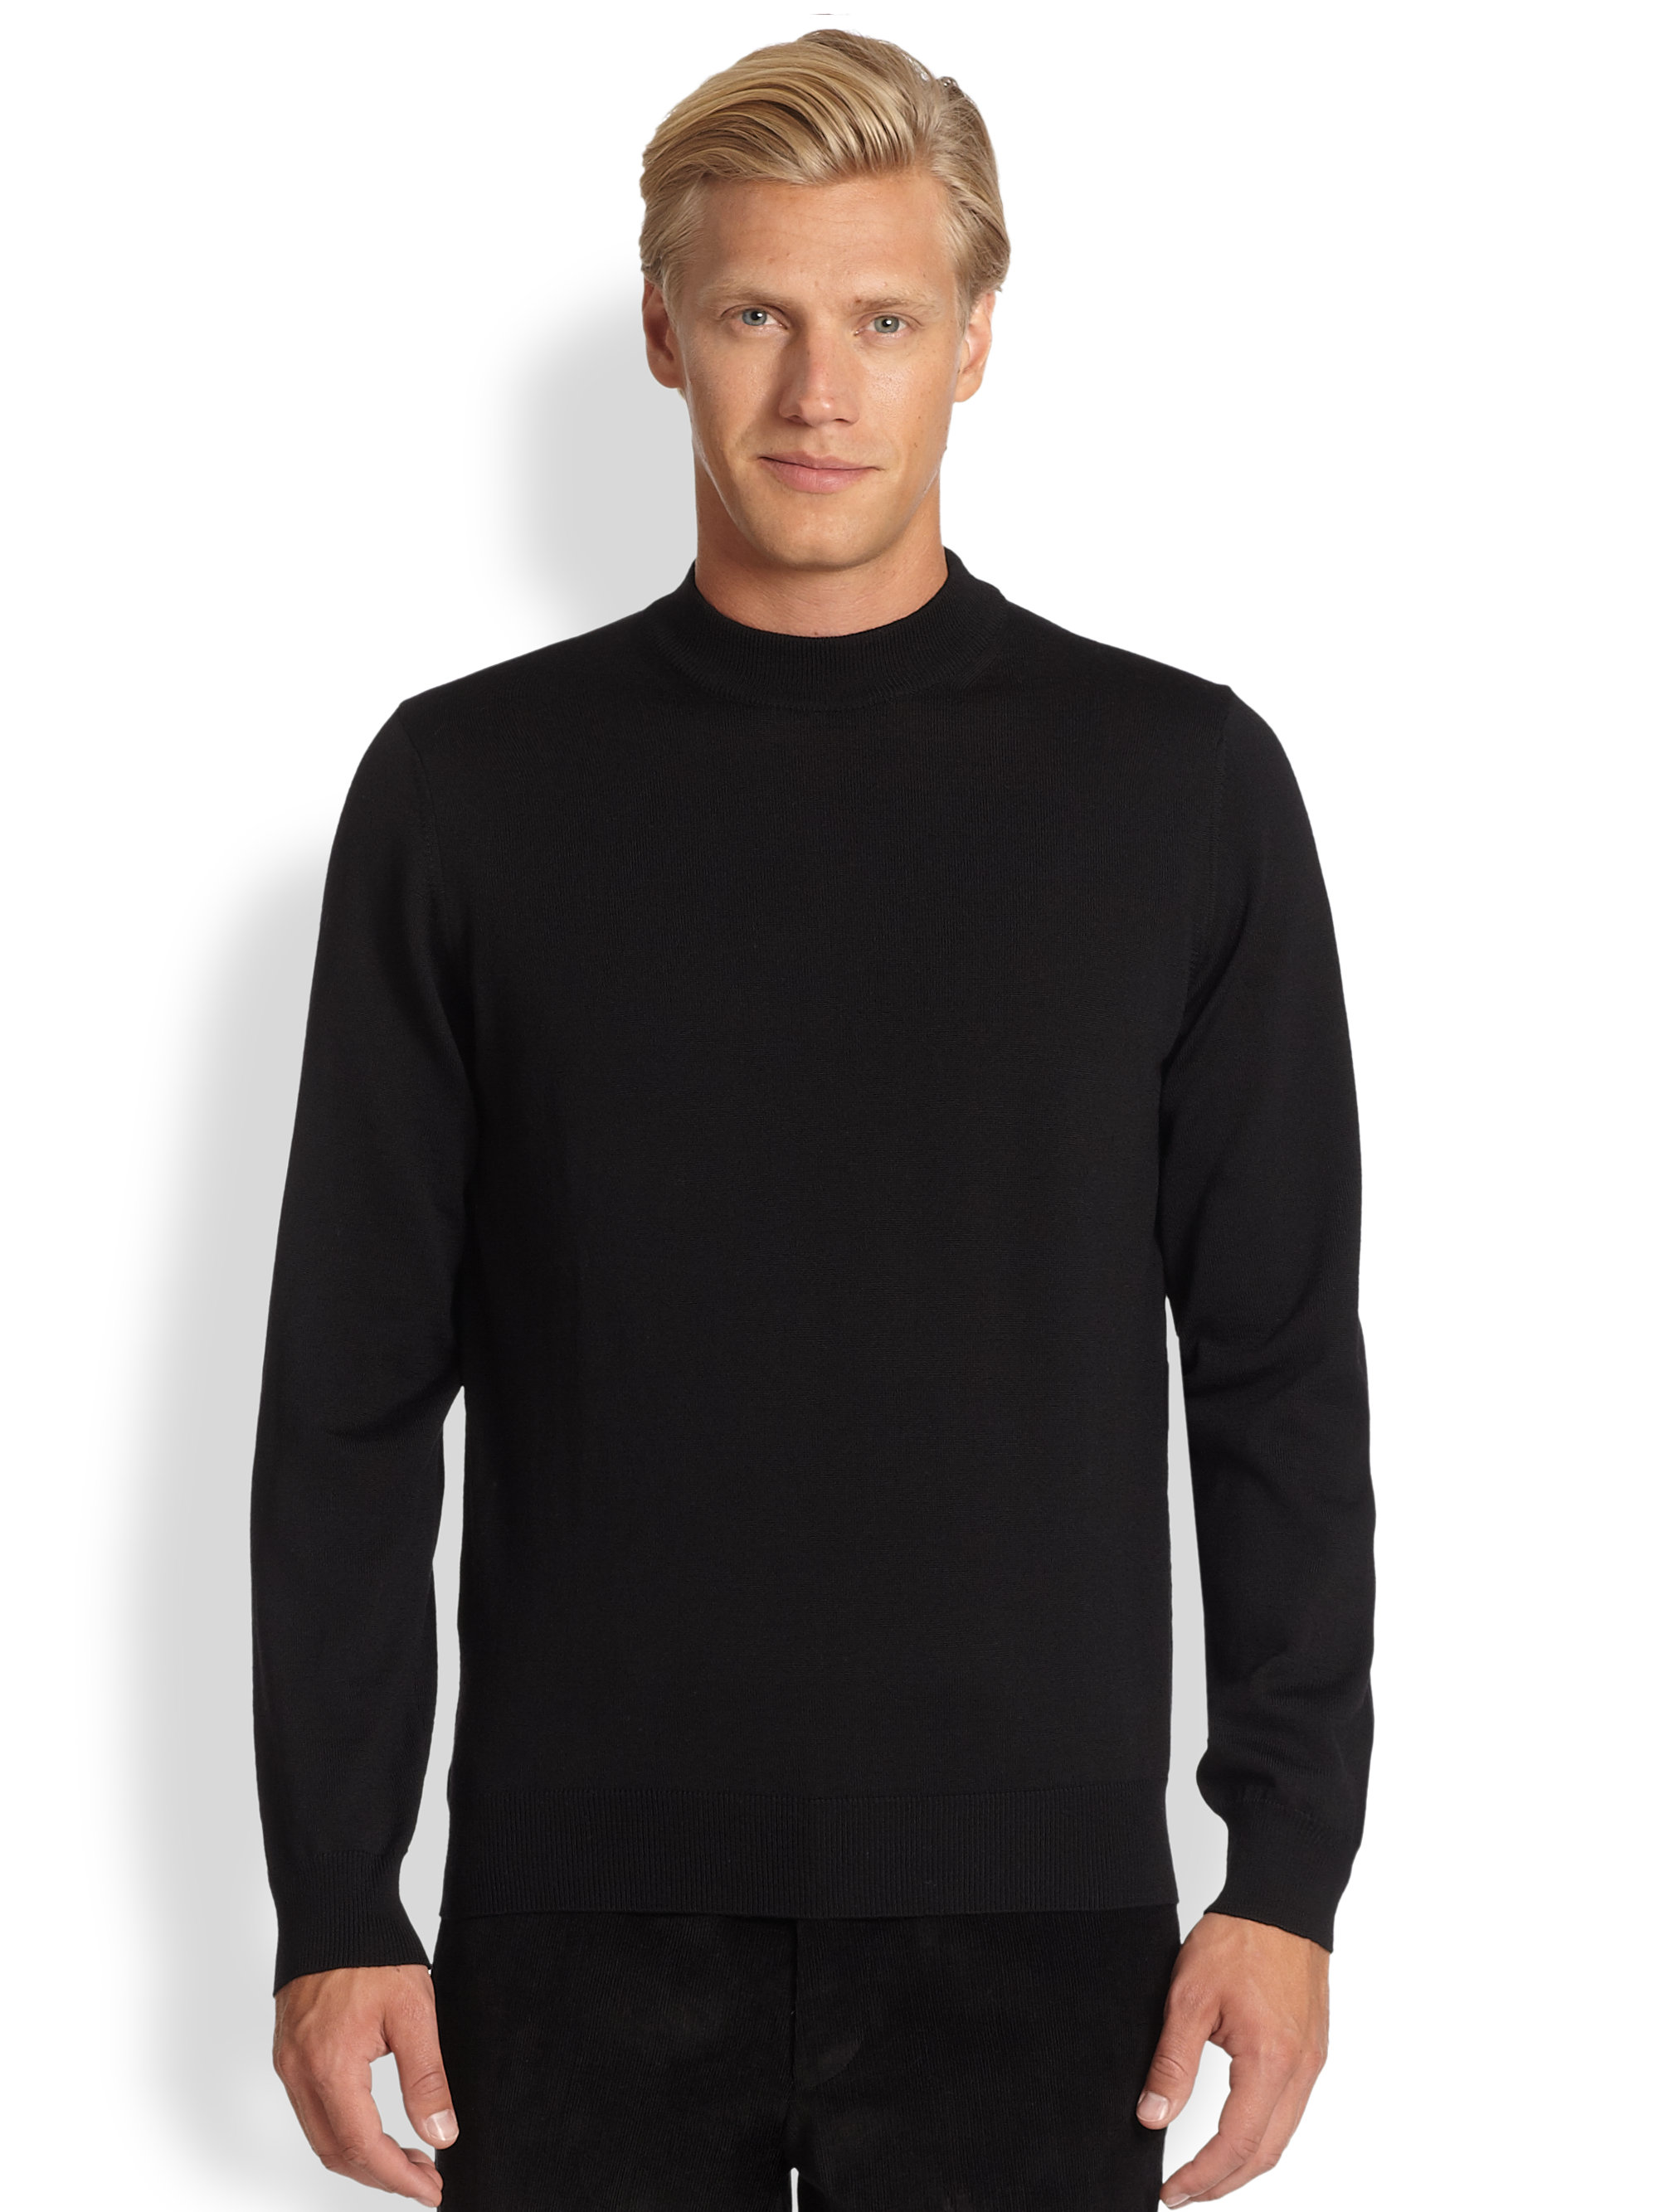 Saks fifth avenue black label Wool Mock Turtleneck Sweater in ...